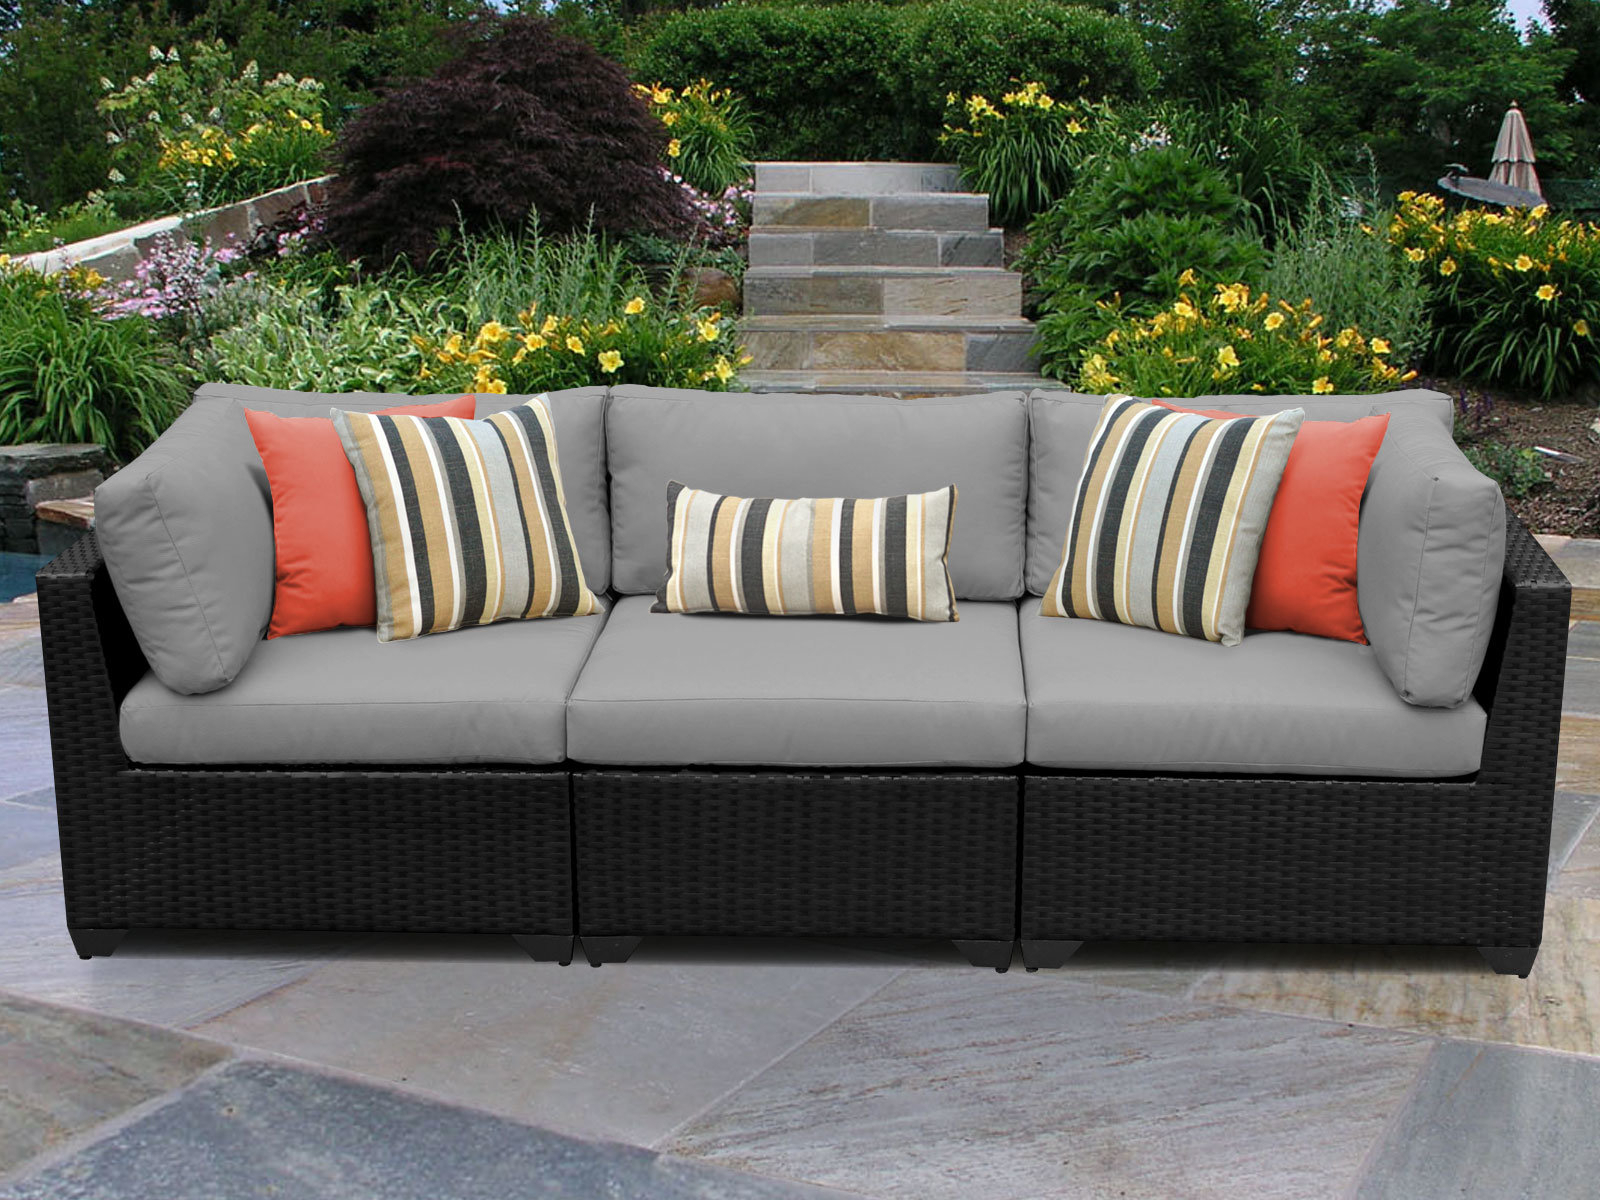 Camak Patio Sofa With Cushions With Regard To 2020 Mcmanis Patio Sofas With Cushion (View 2 of 20)